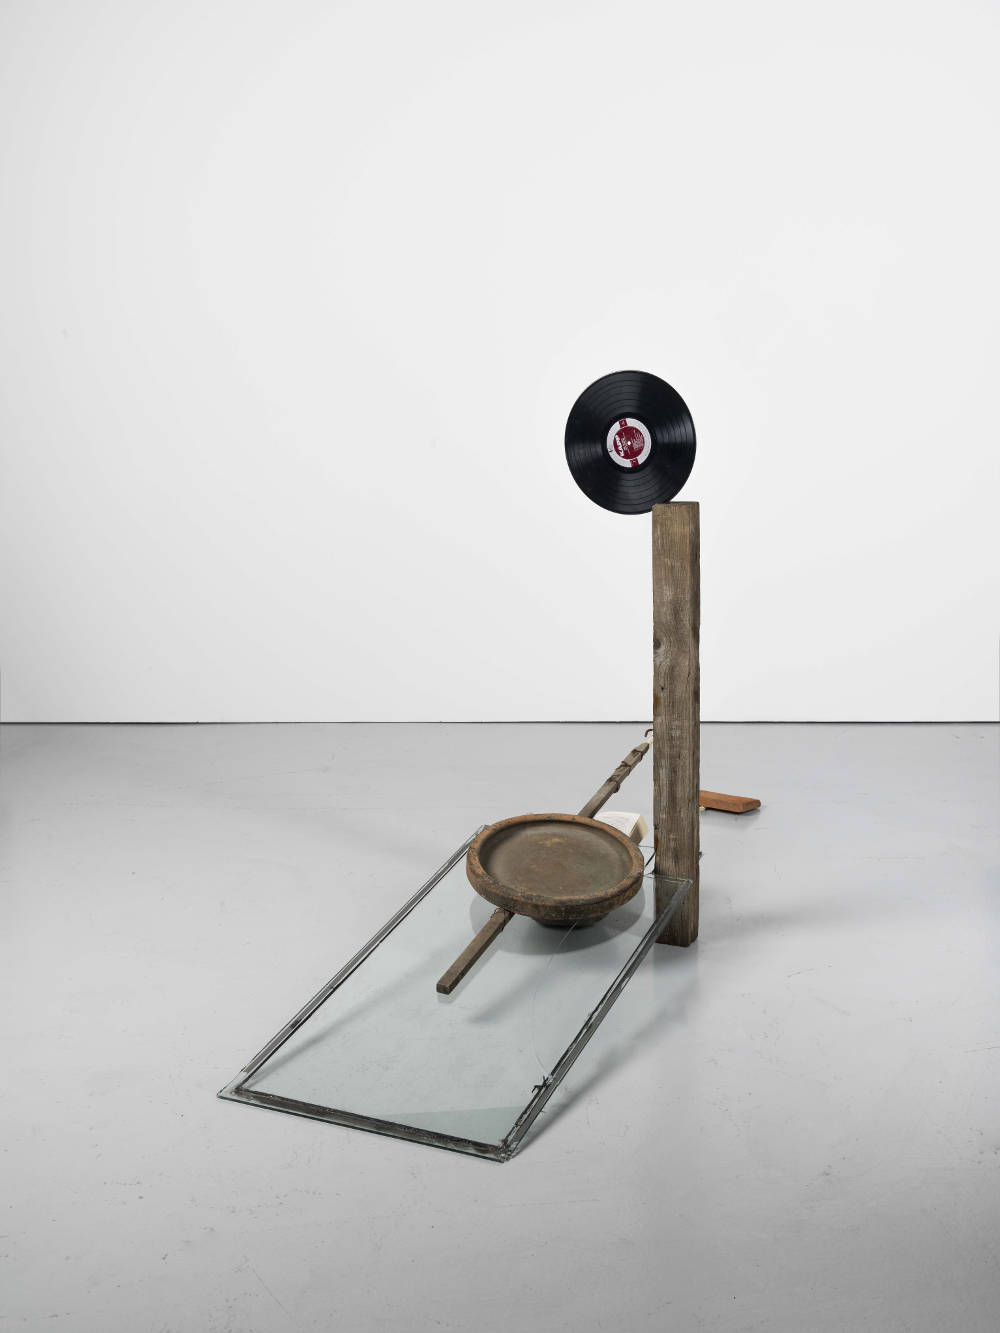 Abraham Cruzvillegas, The hare with amber eyes, 2015. Stone, wood, brick, glass, paper, clay, phone wire, vinyl record, dipstick 125 x 245 x 55 cm. Courtesty of the artist and Galerie Chantal Crousel, Paris. Photo : Florian Kleinefenn